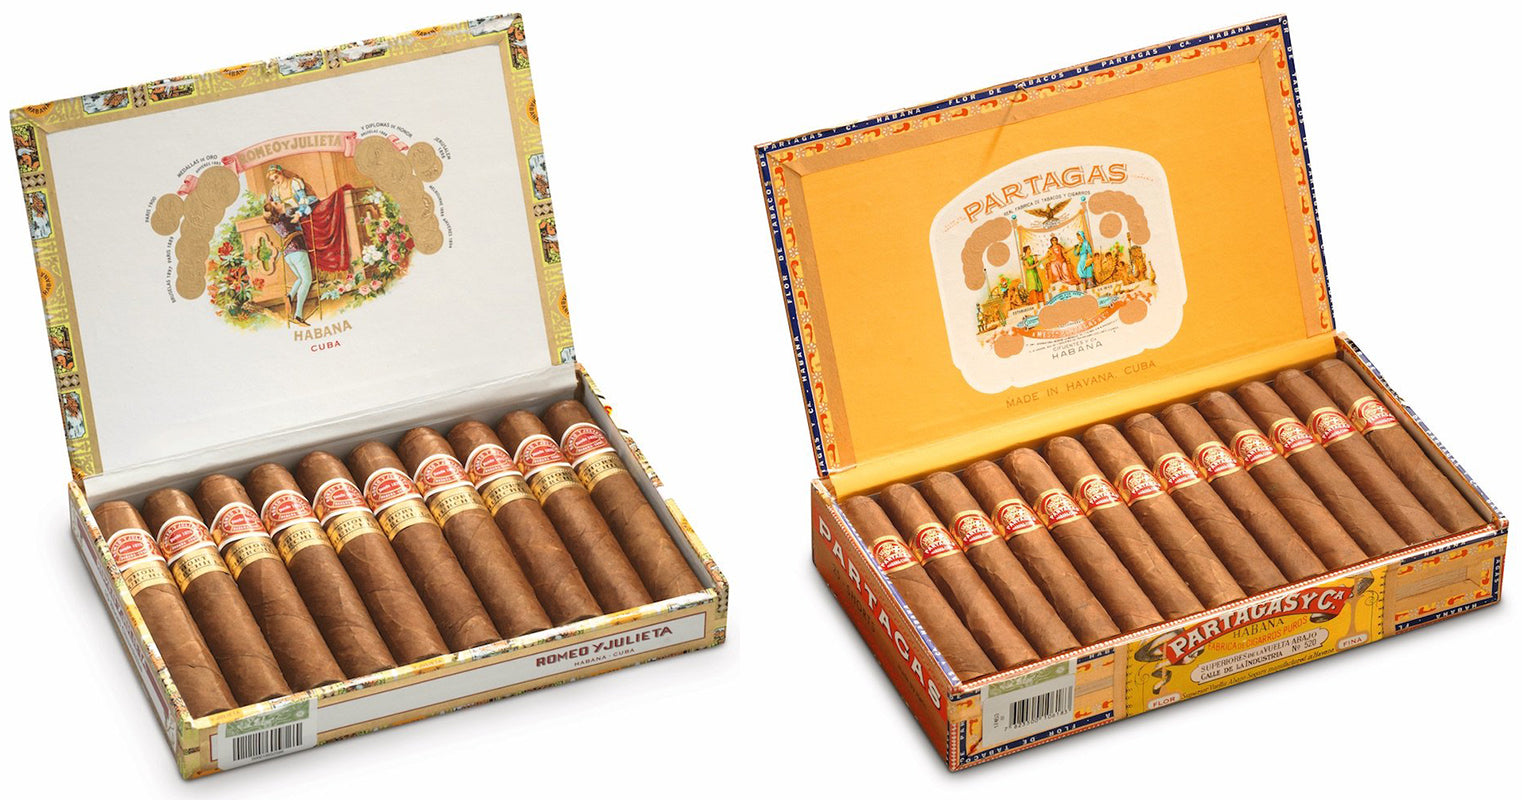 romeo and julieta short churchills cigar and partagas shorts cigar egm cigar